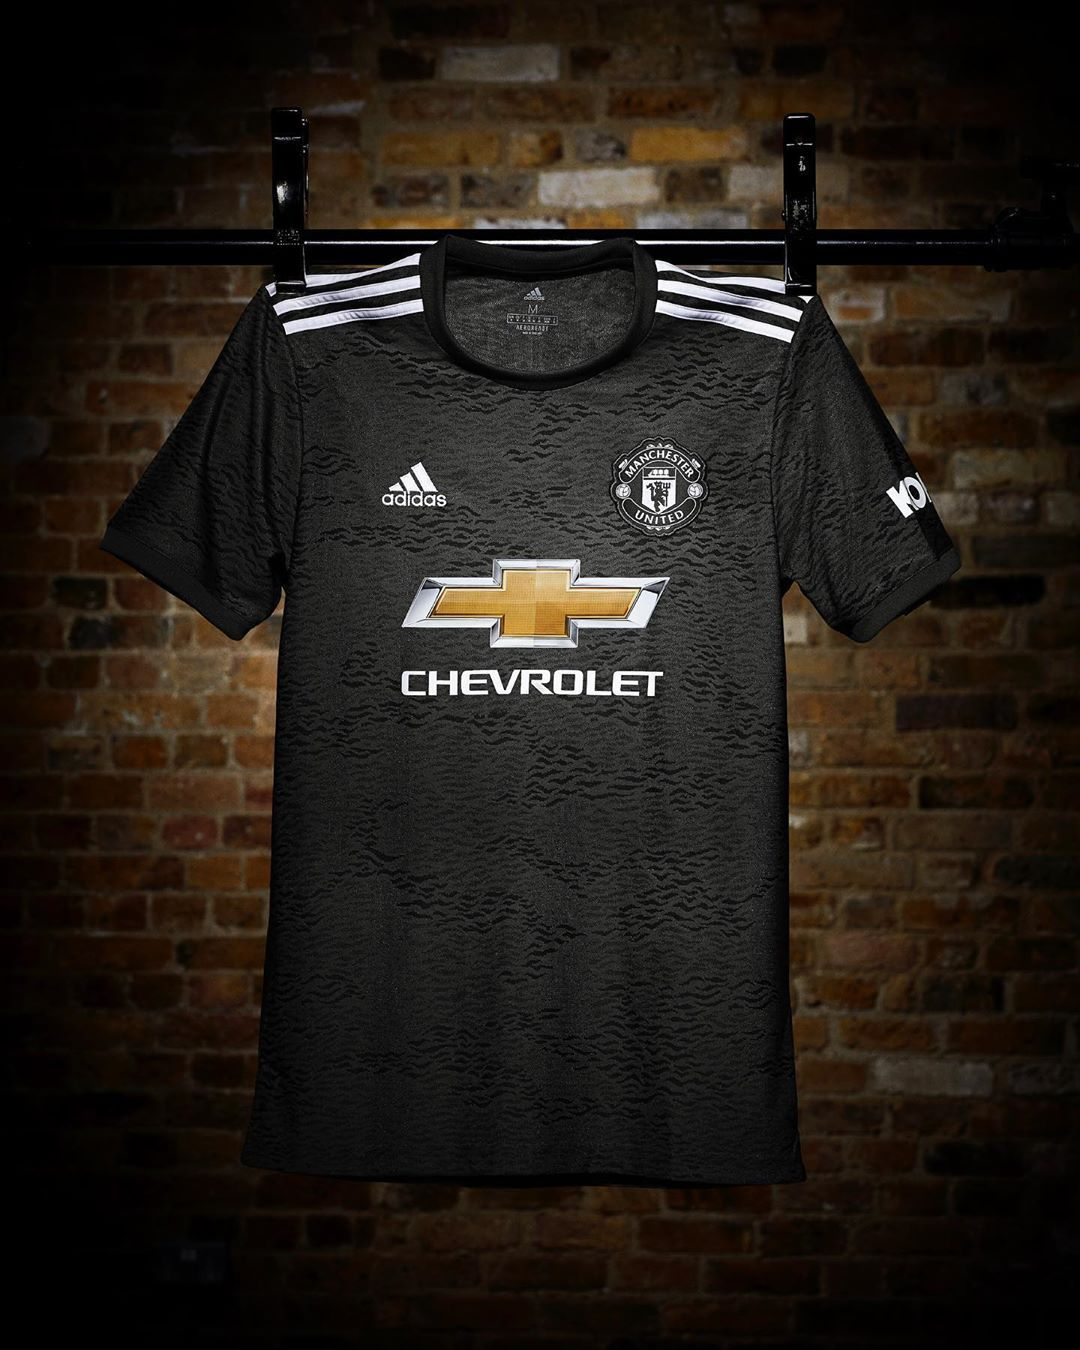 Away Days Presenting The New Manchesterunited 2020 21 Away Jersey From Adidasfootball The Jersey In 2020 Manchester United The Unit Manchester United Away Kit